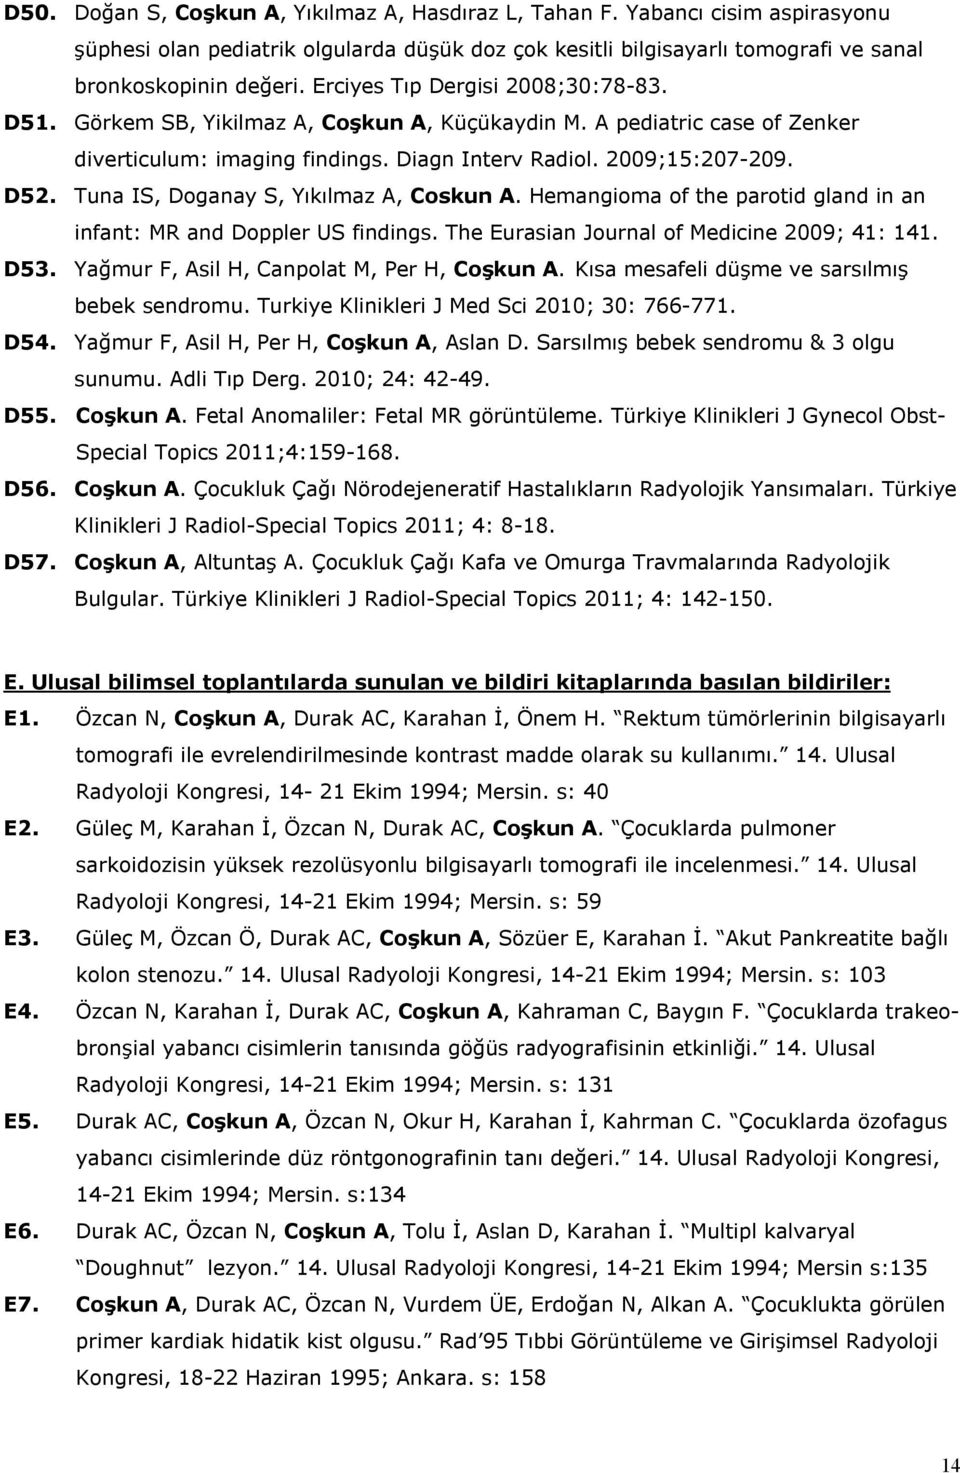 Tuna IS, Doganay S, Yıkılmaz A, Coskun A. Hemangioma of the parotid gland in an infant: MR and Doppler US findings. The Eurasian Journal of Medicine 2009; 41: 141. D53.